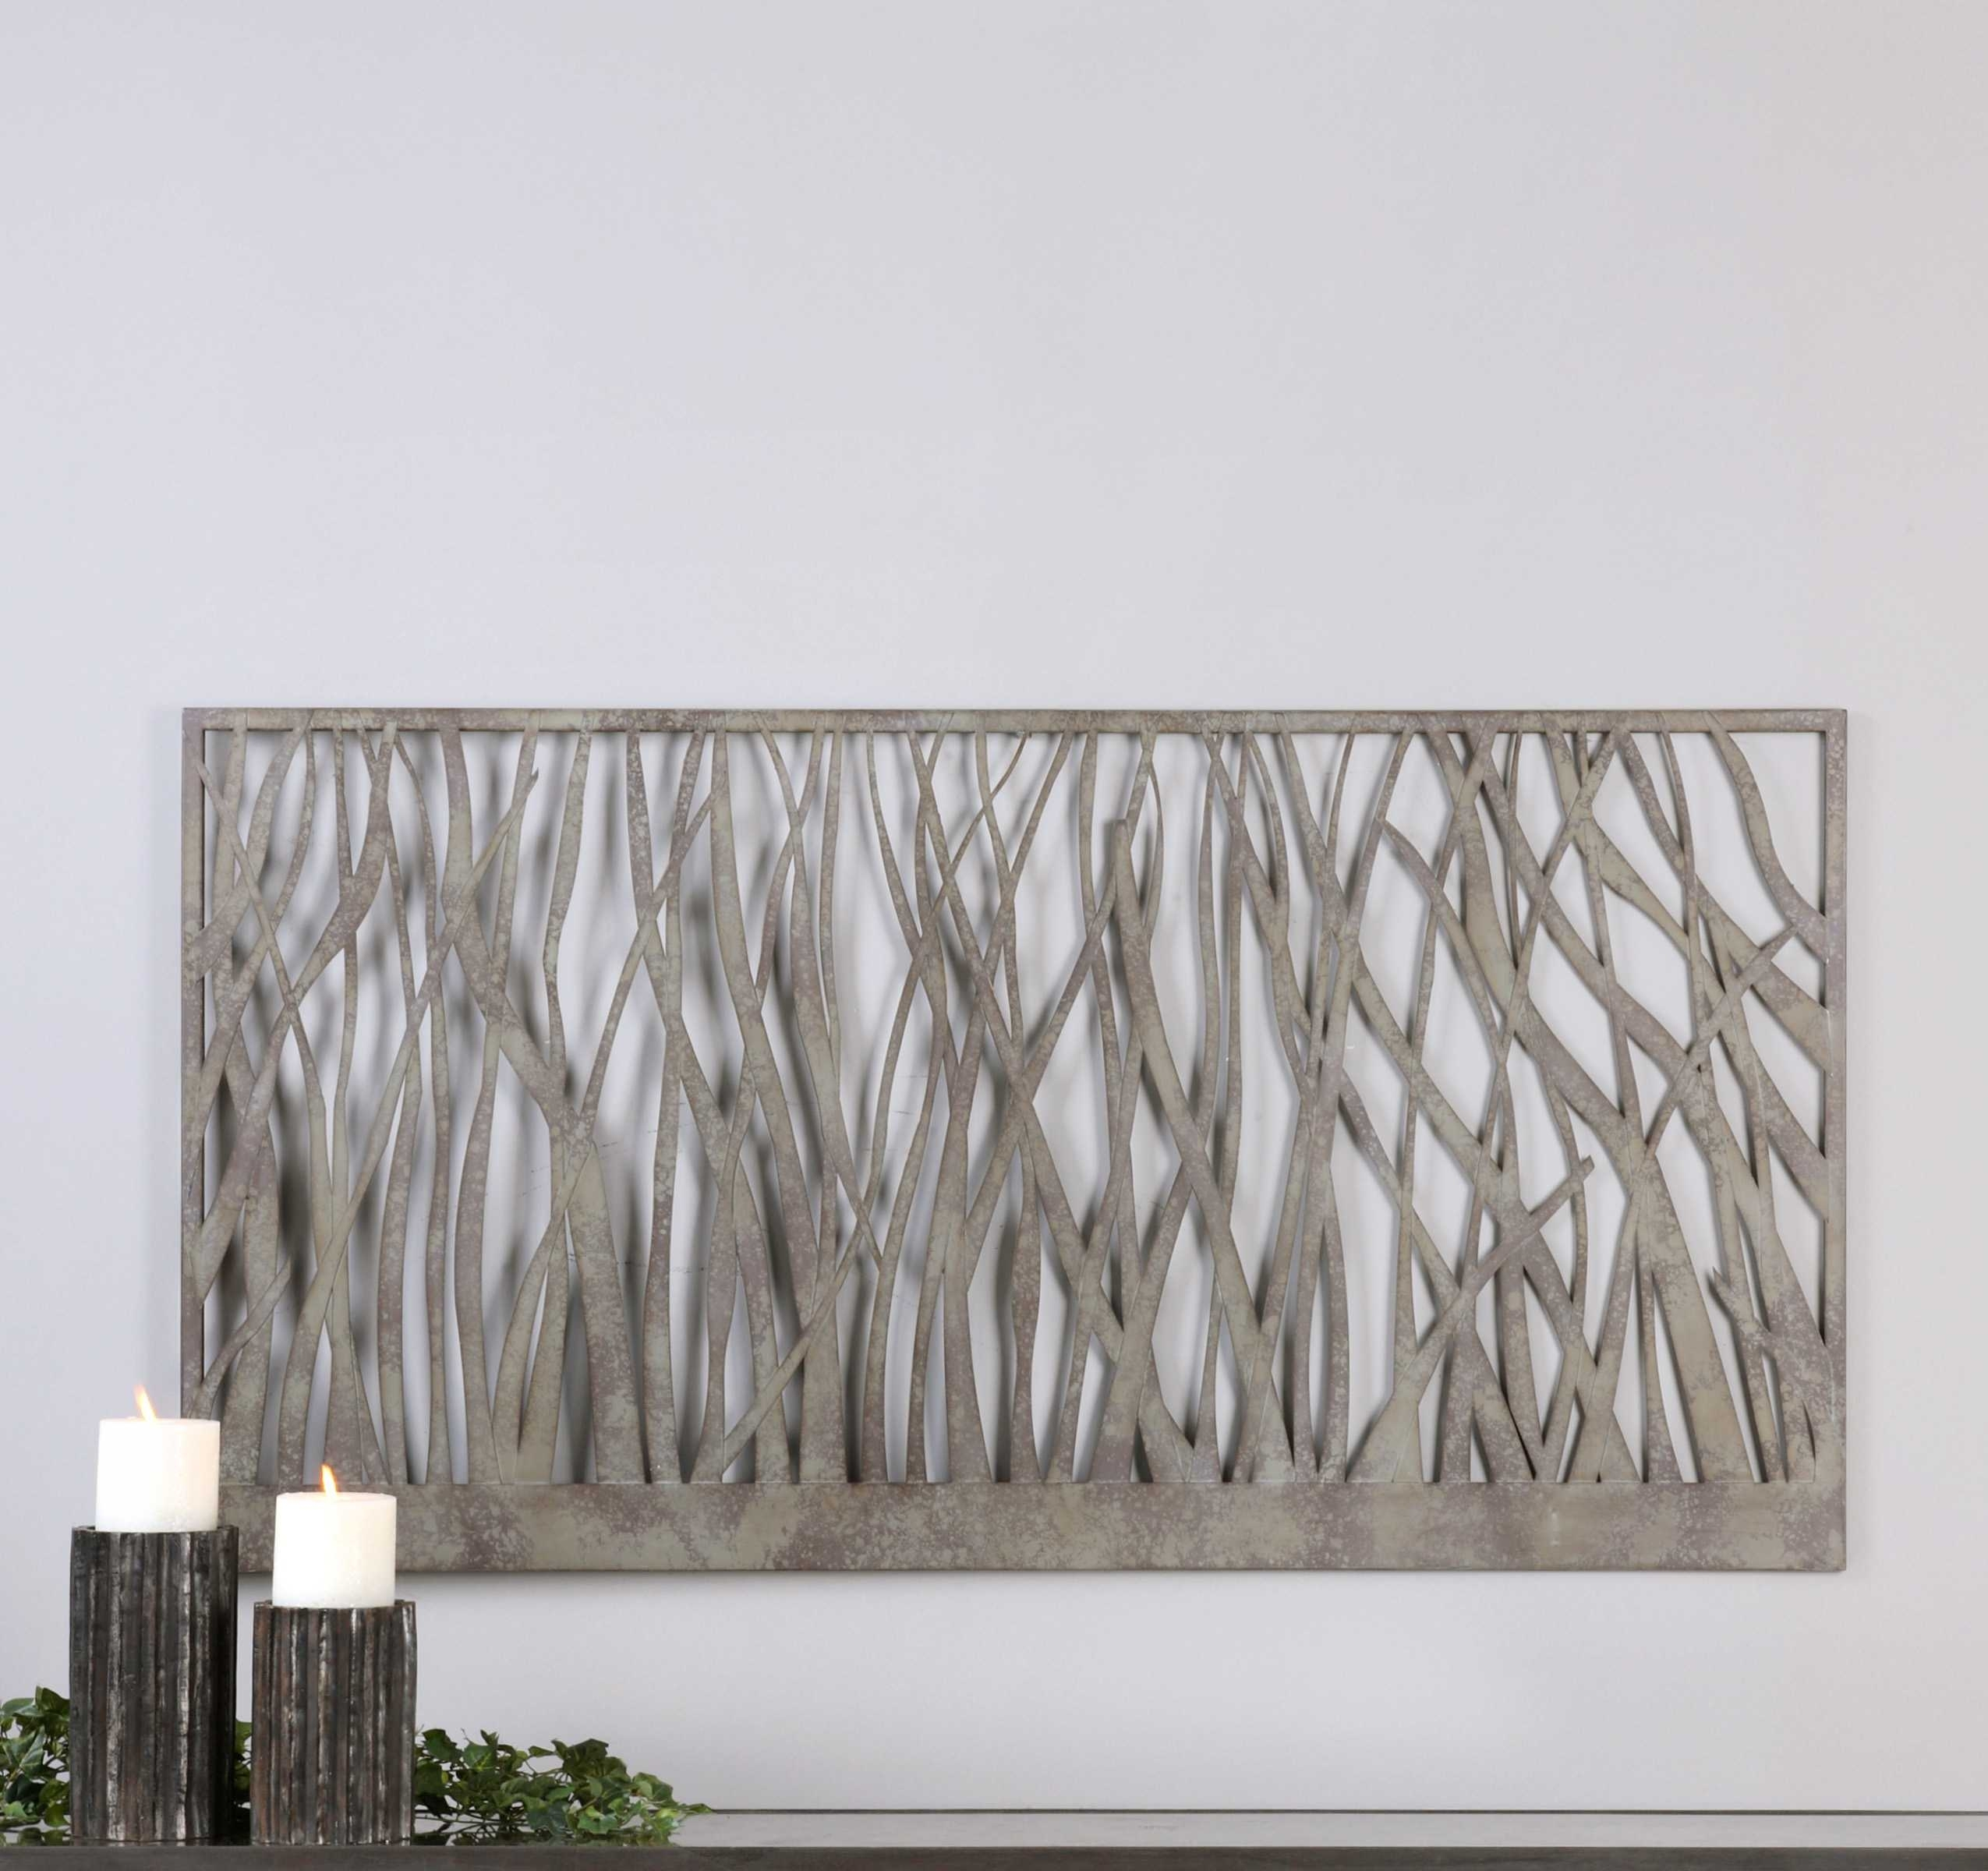 Uttermost Amadahy Metal Wall Art | Ut13931 Inside Latest Uttermost Wall Art (View 8 of 20)